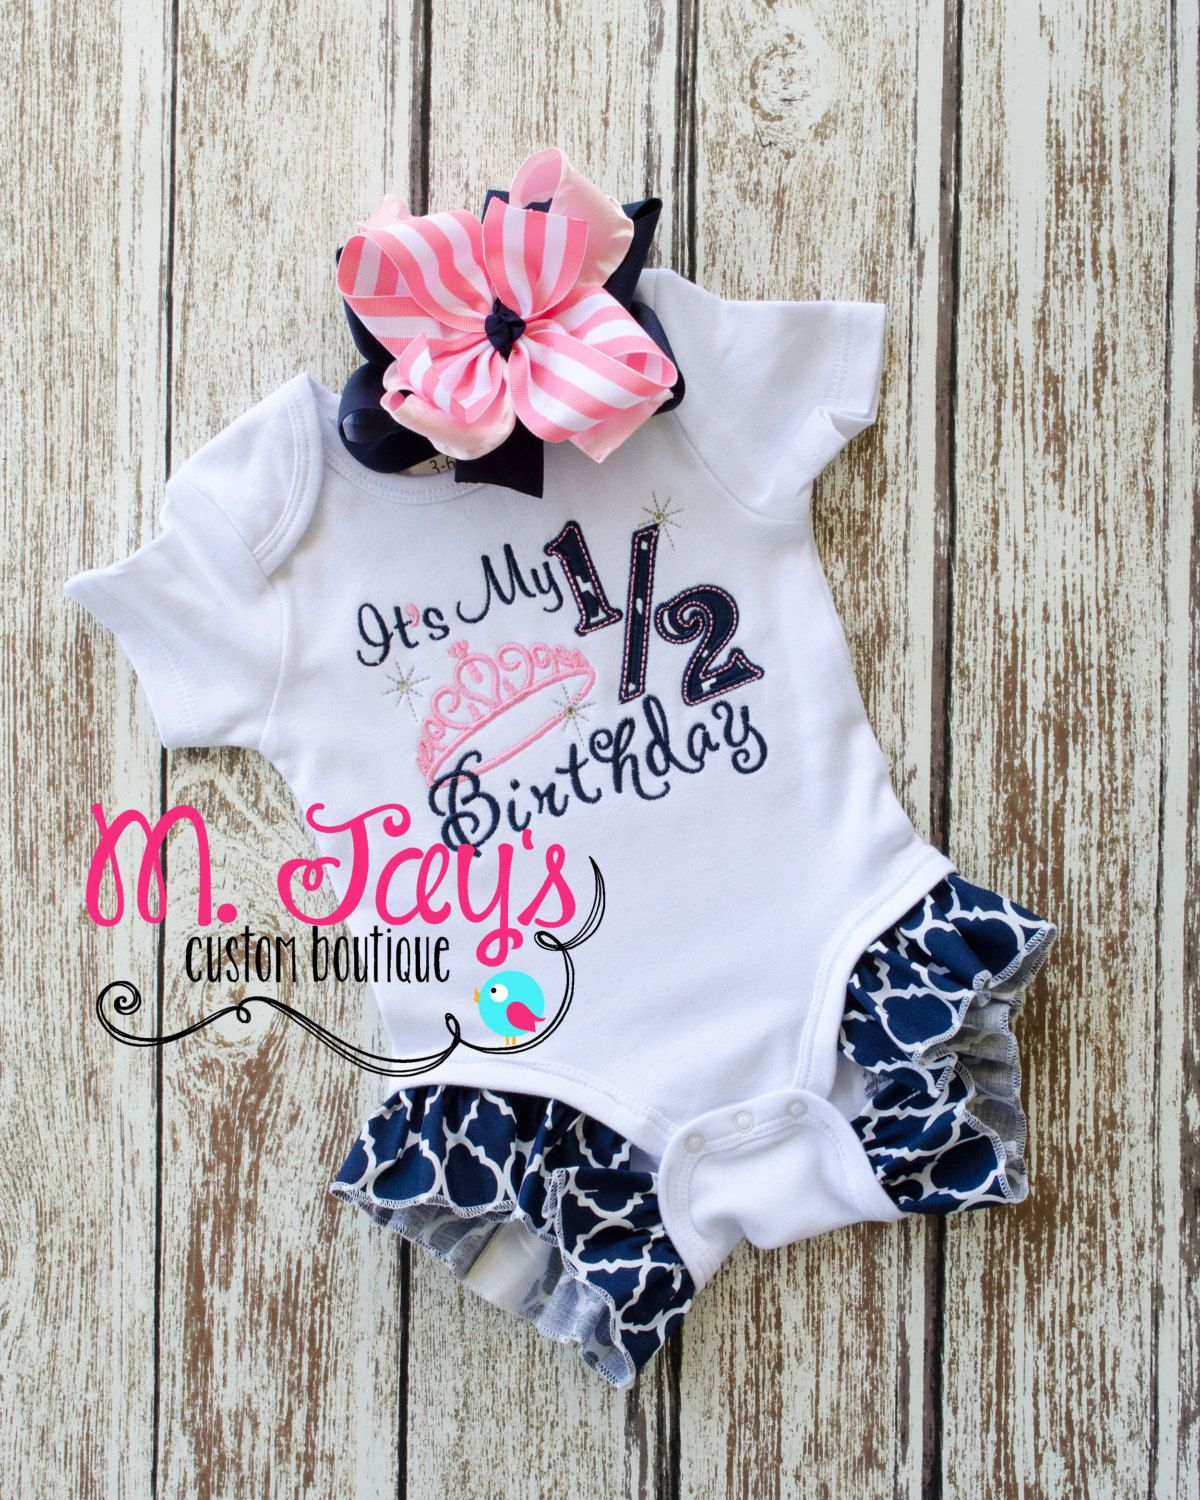 b898a6d492e6 Princess Half Birthday Outfit- Great for that 6 months or 1 2 birthday  photoshoot! by MJaysBoutique on Etsy